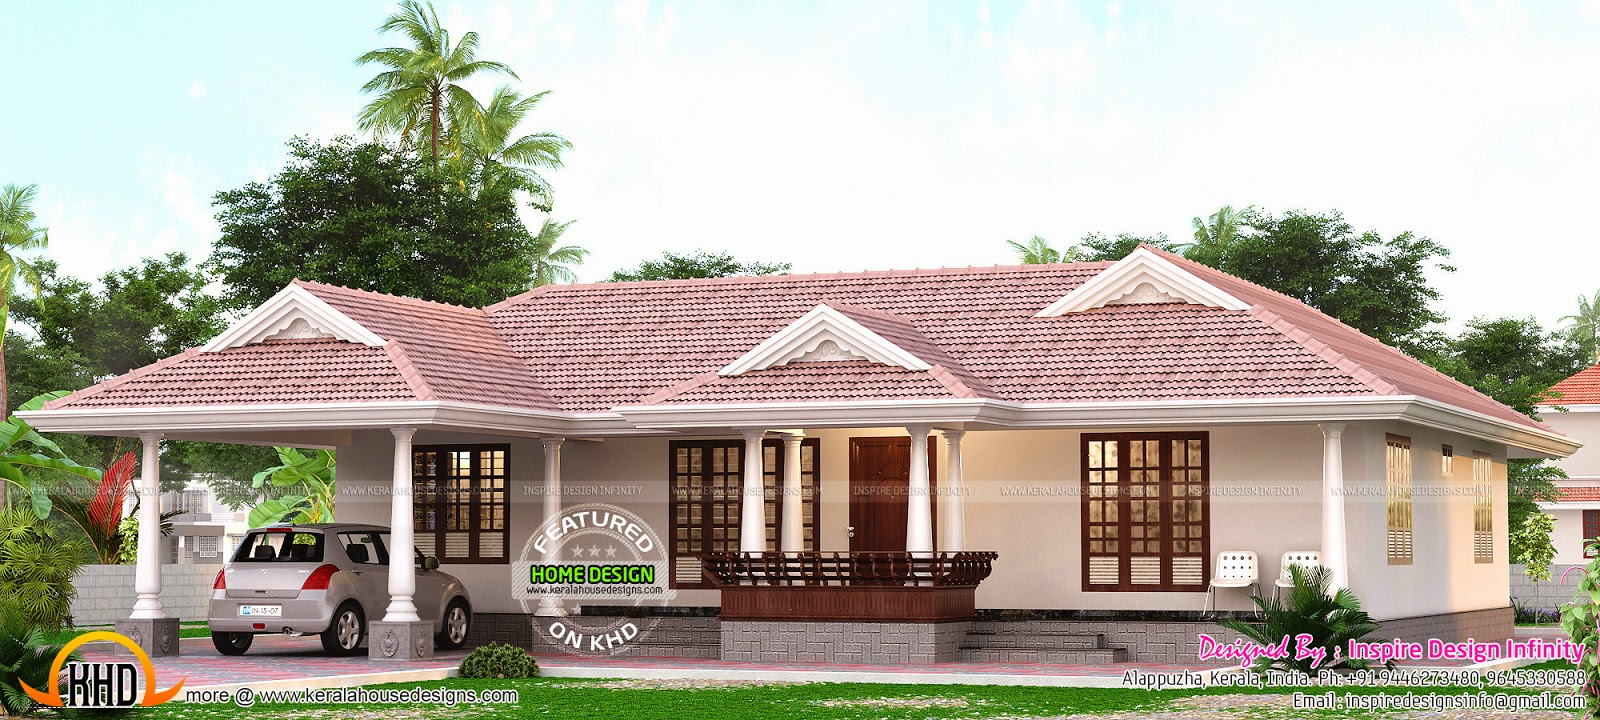 Kerala model single storied home kerala home design and for Kerala traditional home plans with photos